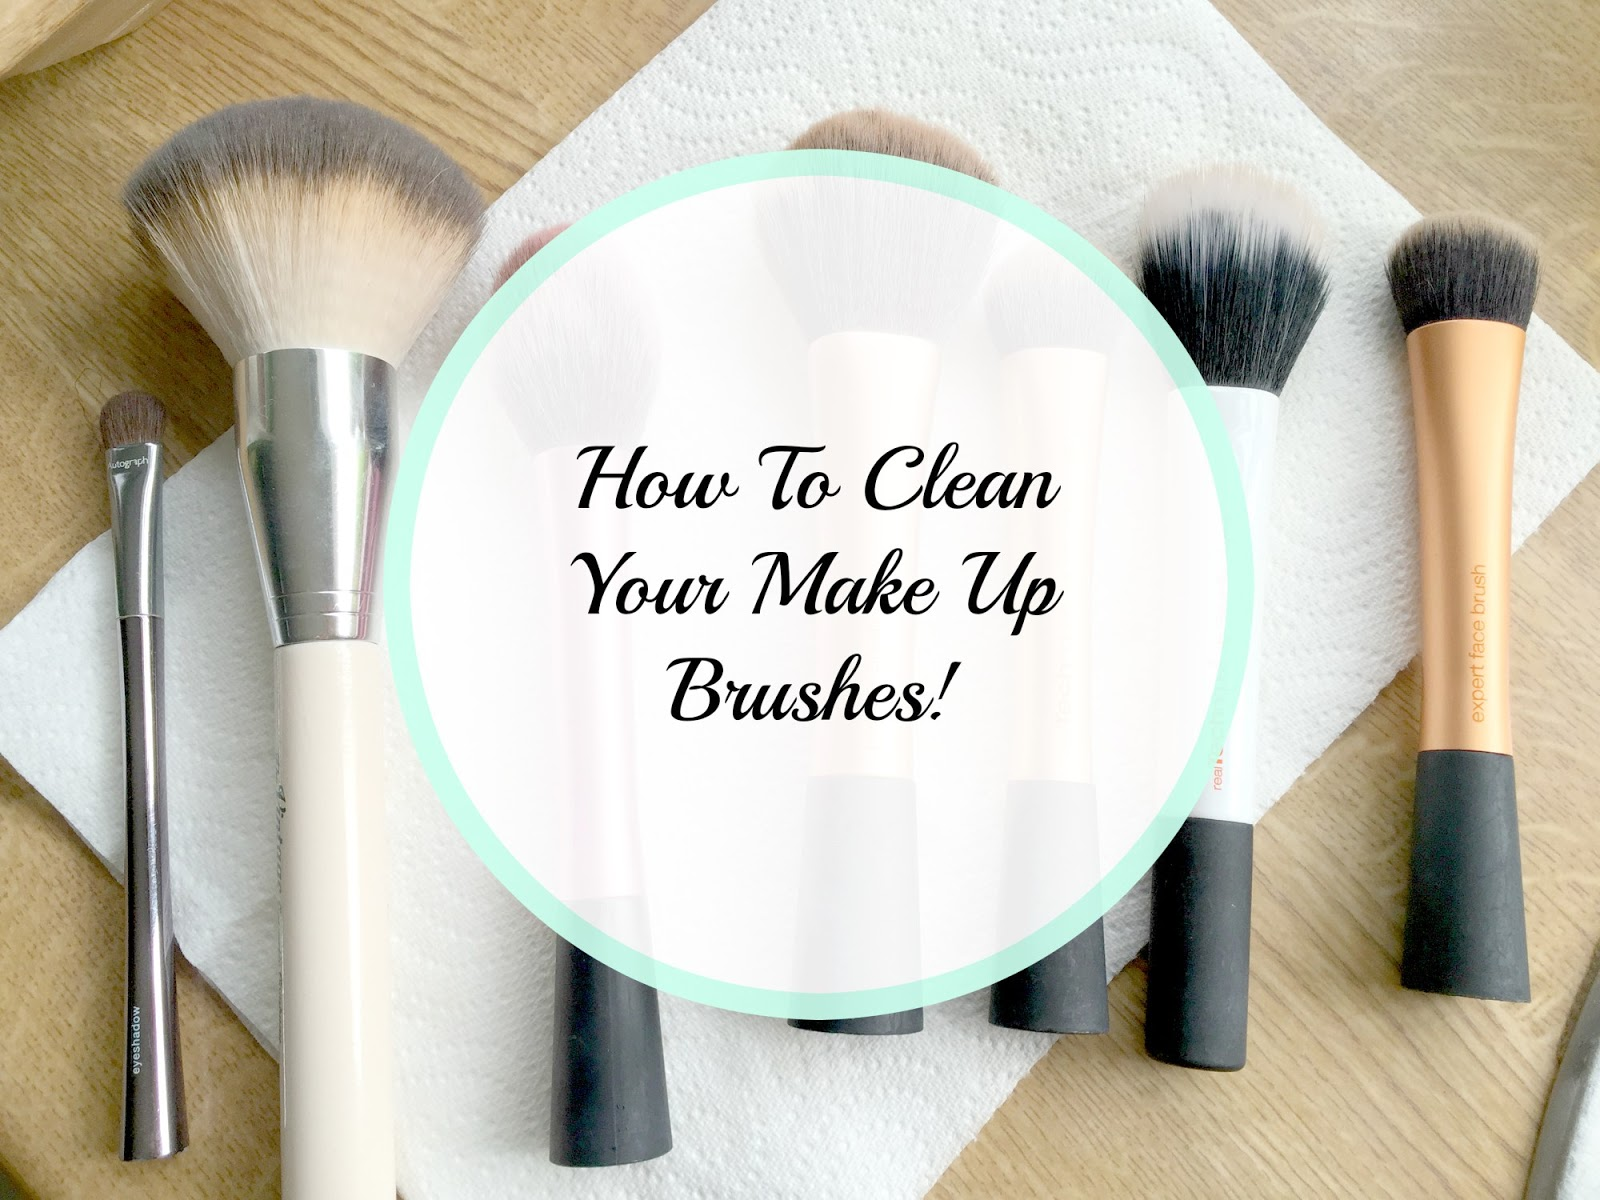 As some of you may know I suffer a lot with breakouts on my skin, and for me, clean, fresh, germ-free makeup brushes make a HUGE difference.